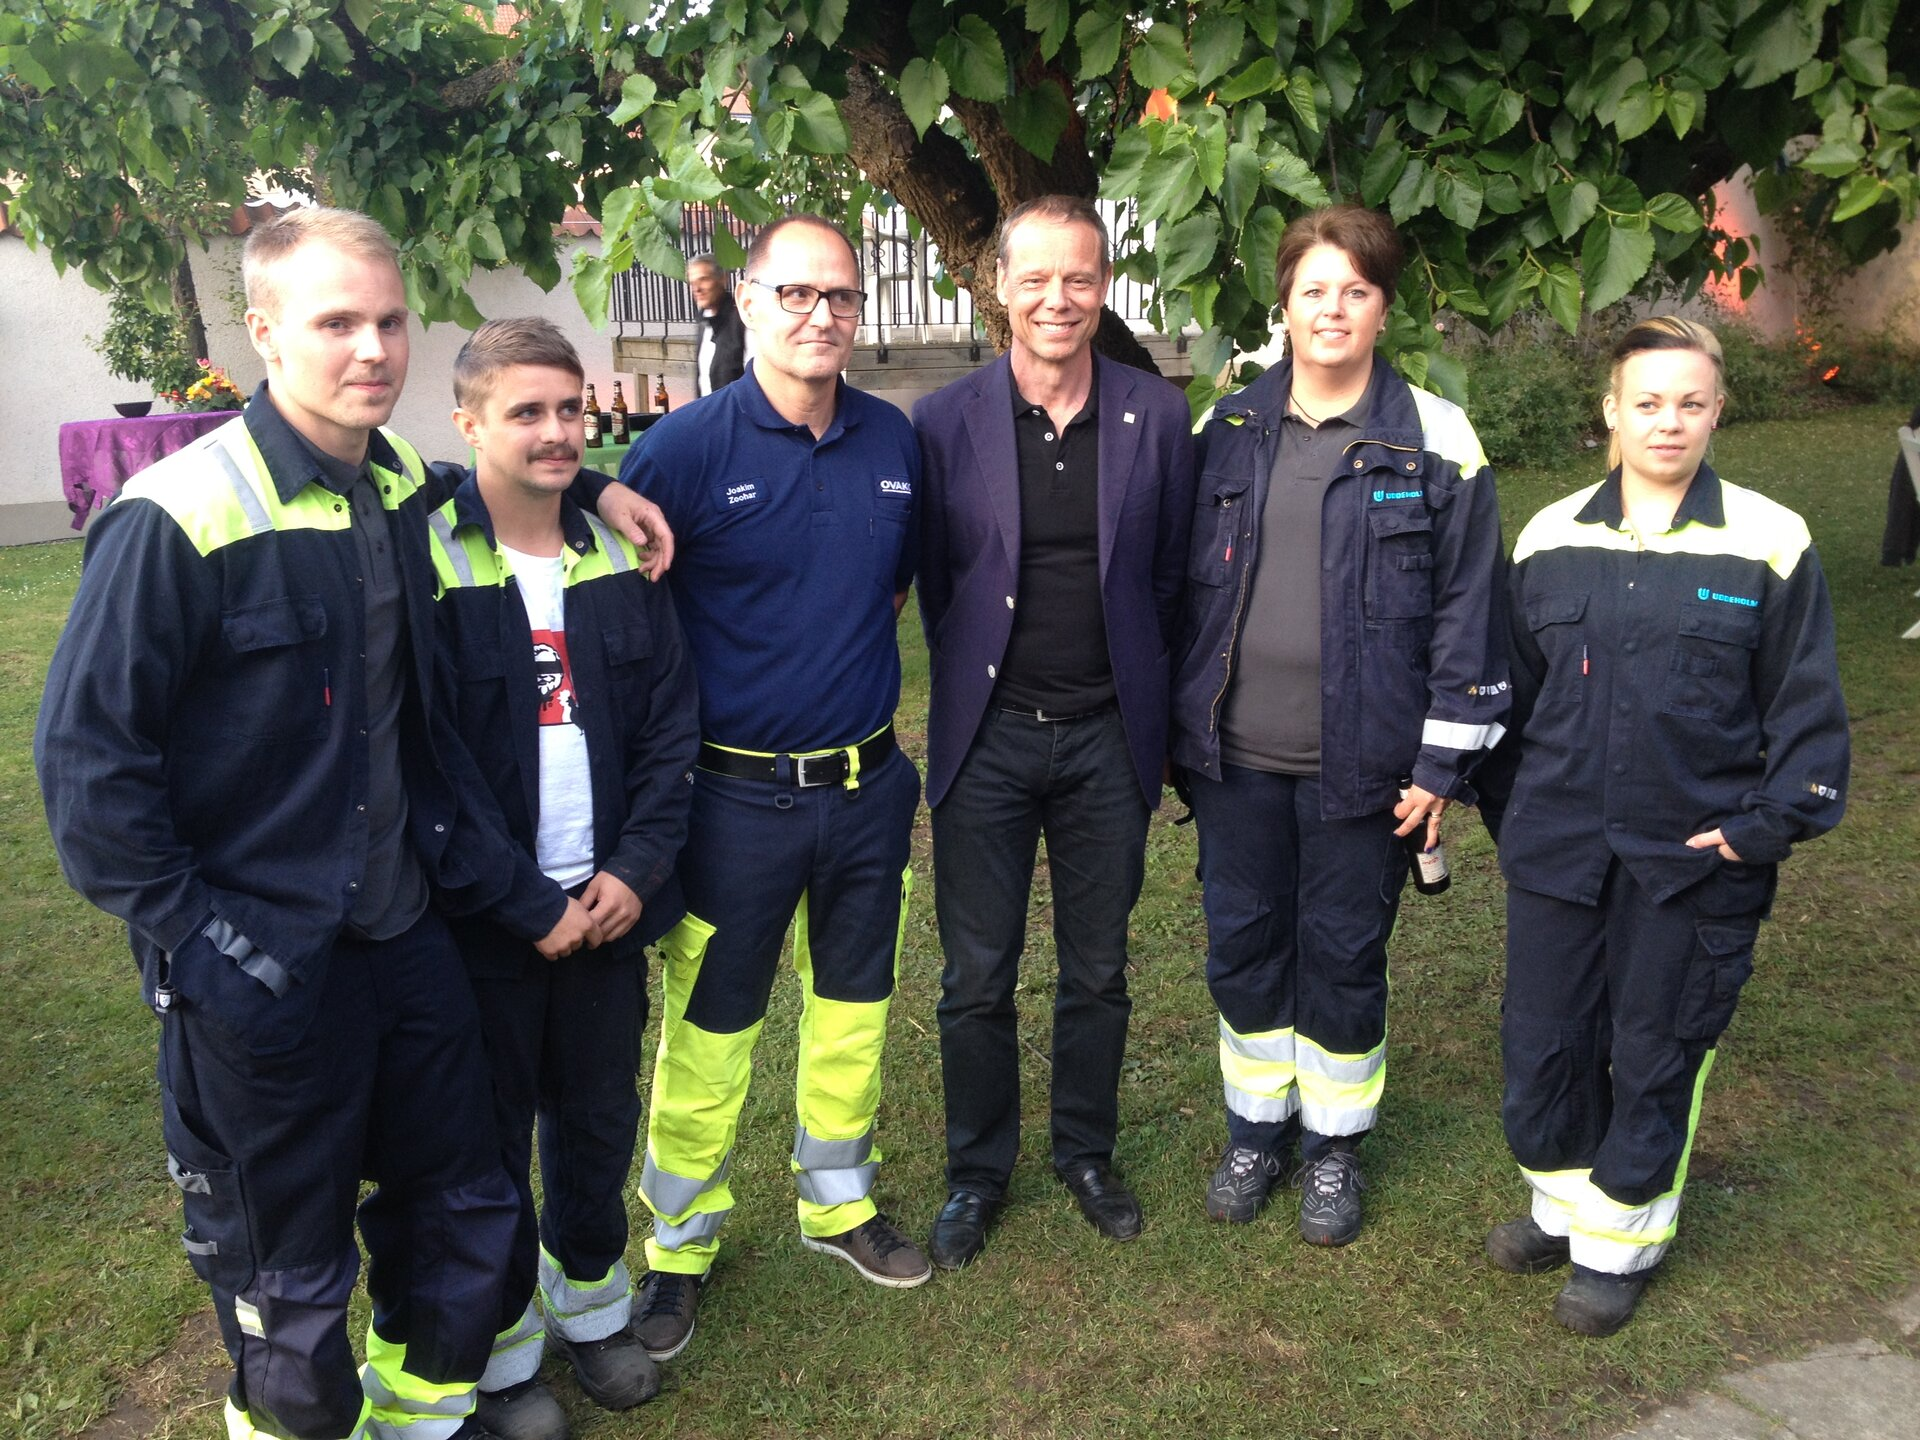 Christer Fuglesang and steel mill workers